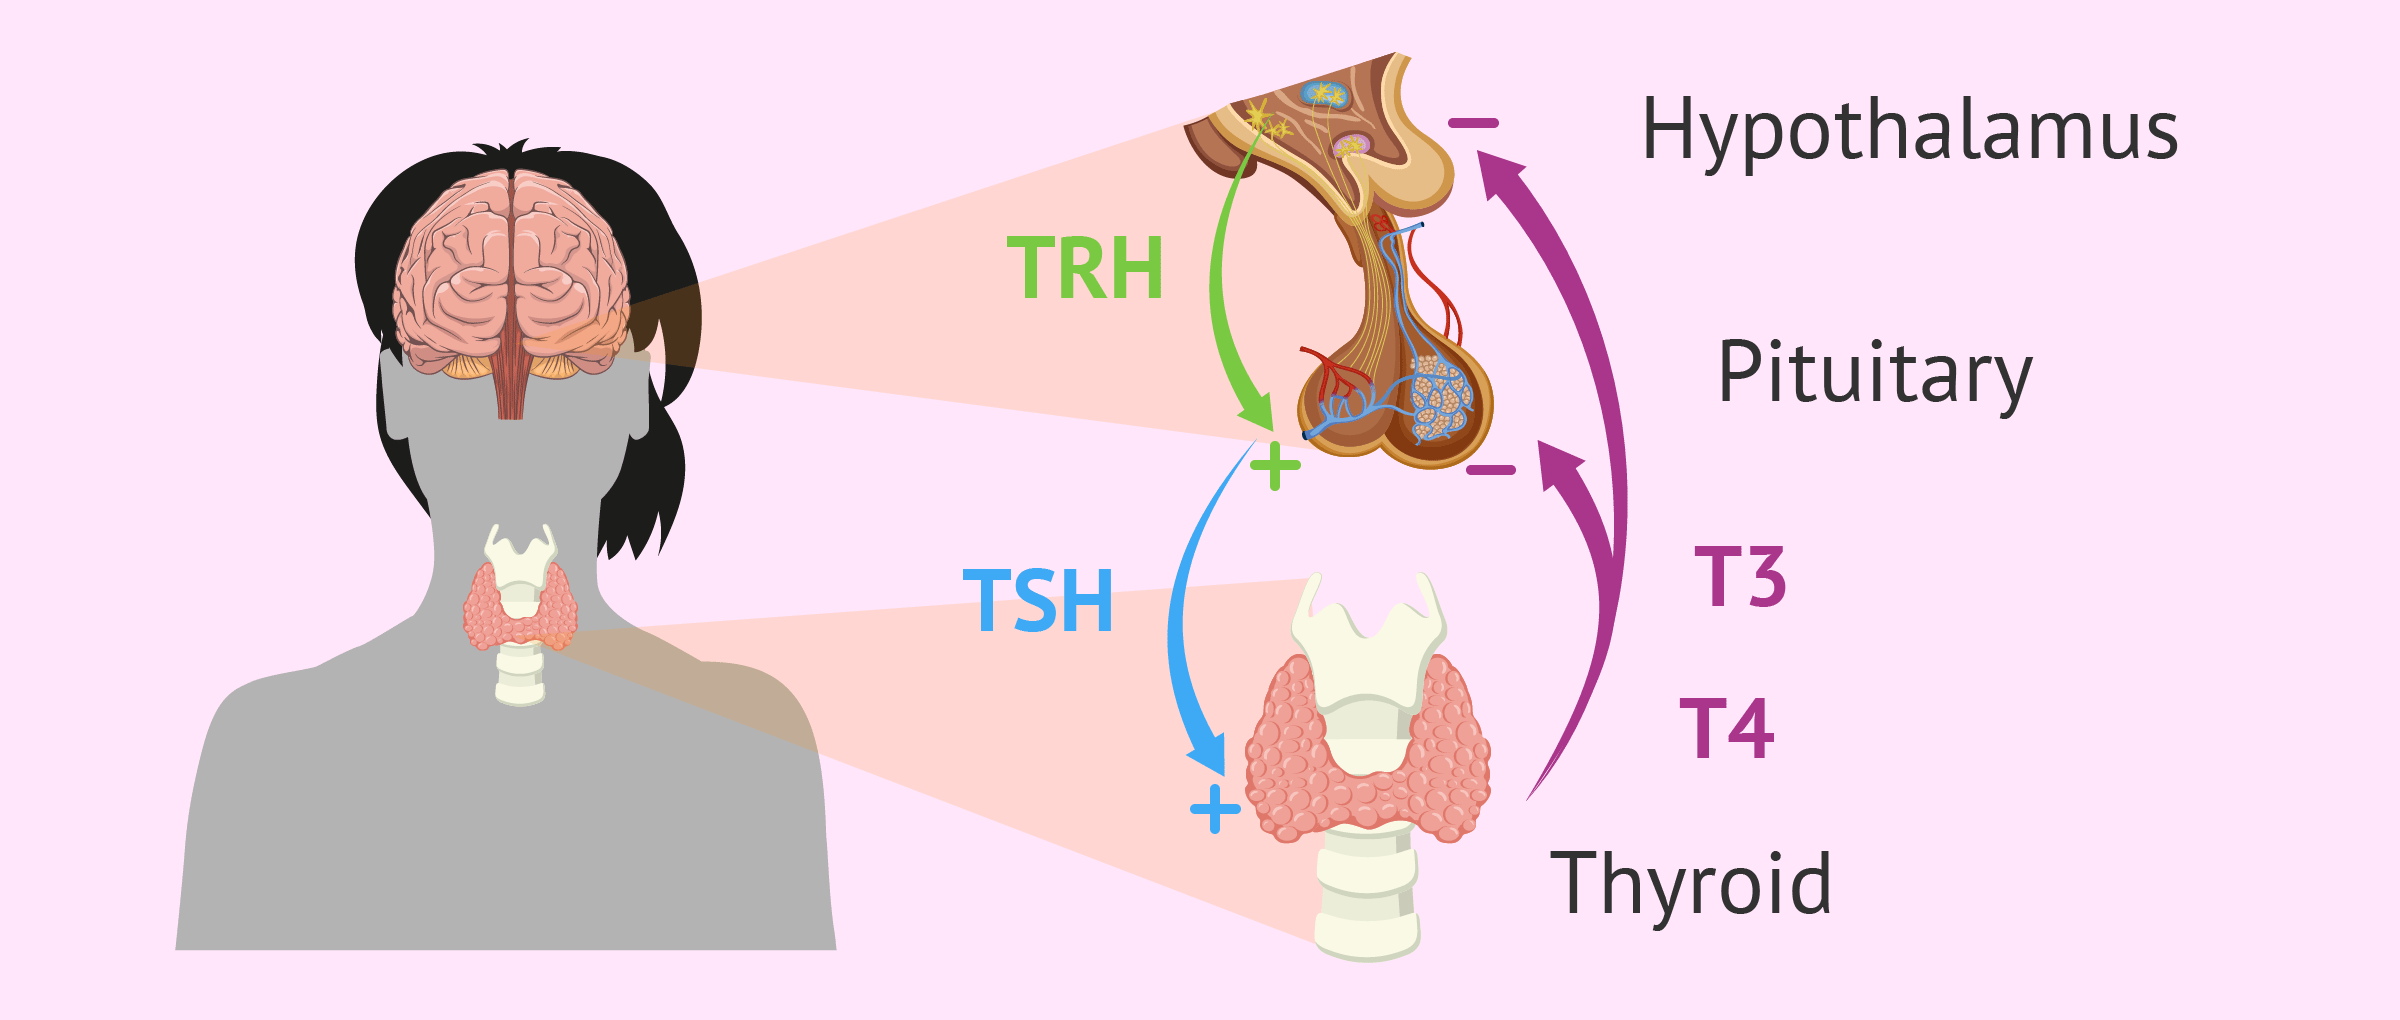 Thyroid gland and hormones regulations